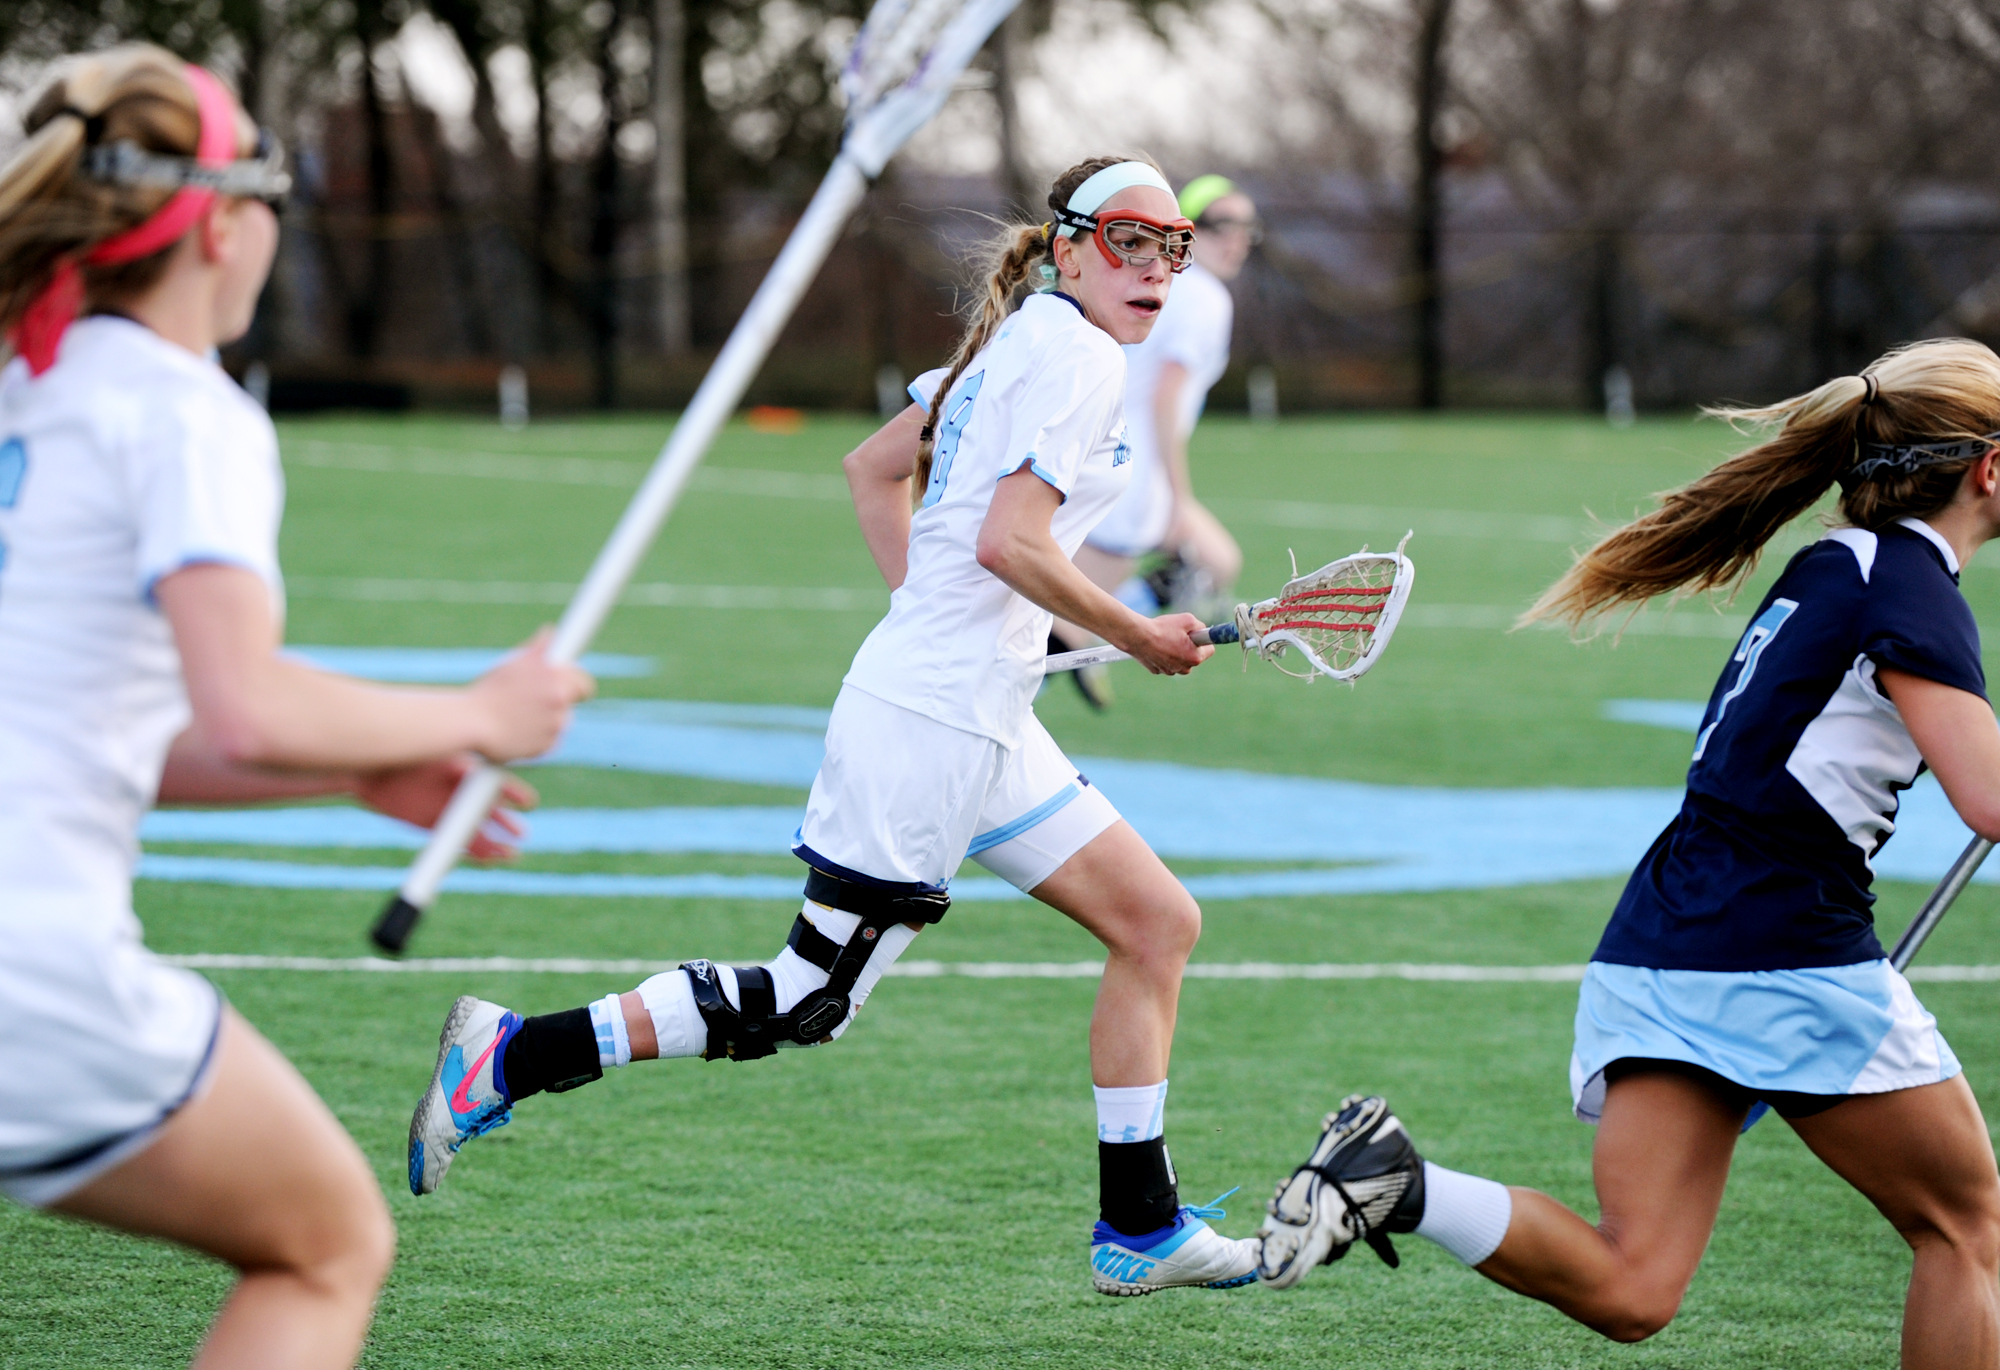 Mount de Sales senior finally back on lacrosse field after two ACL tears